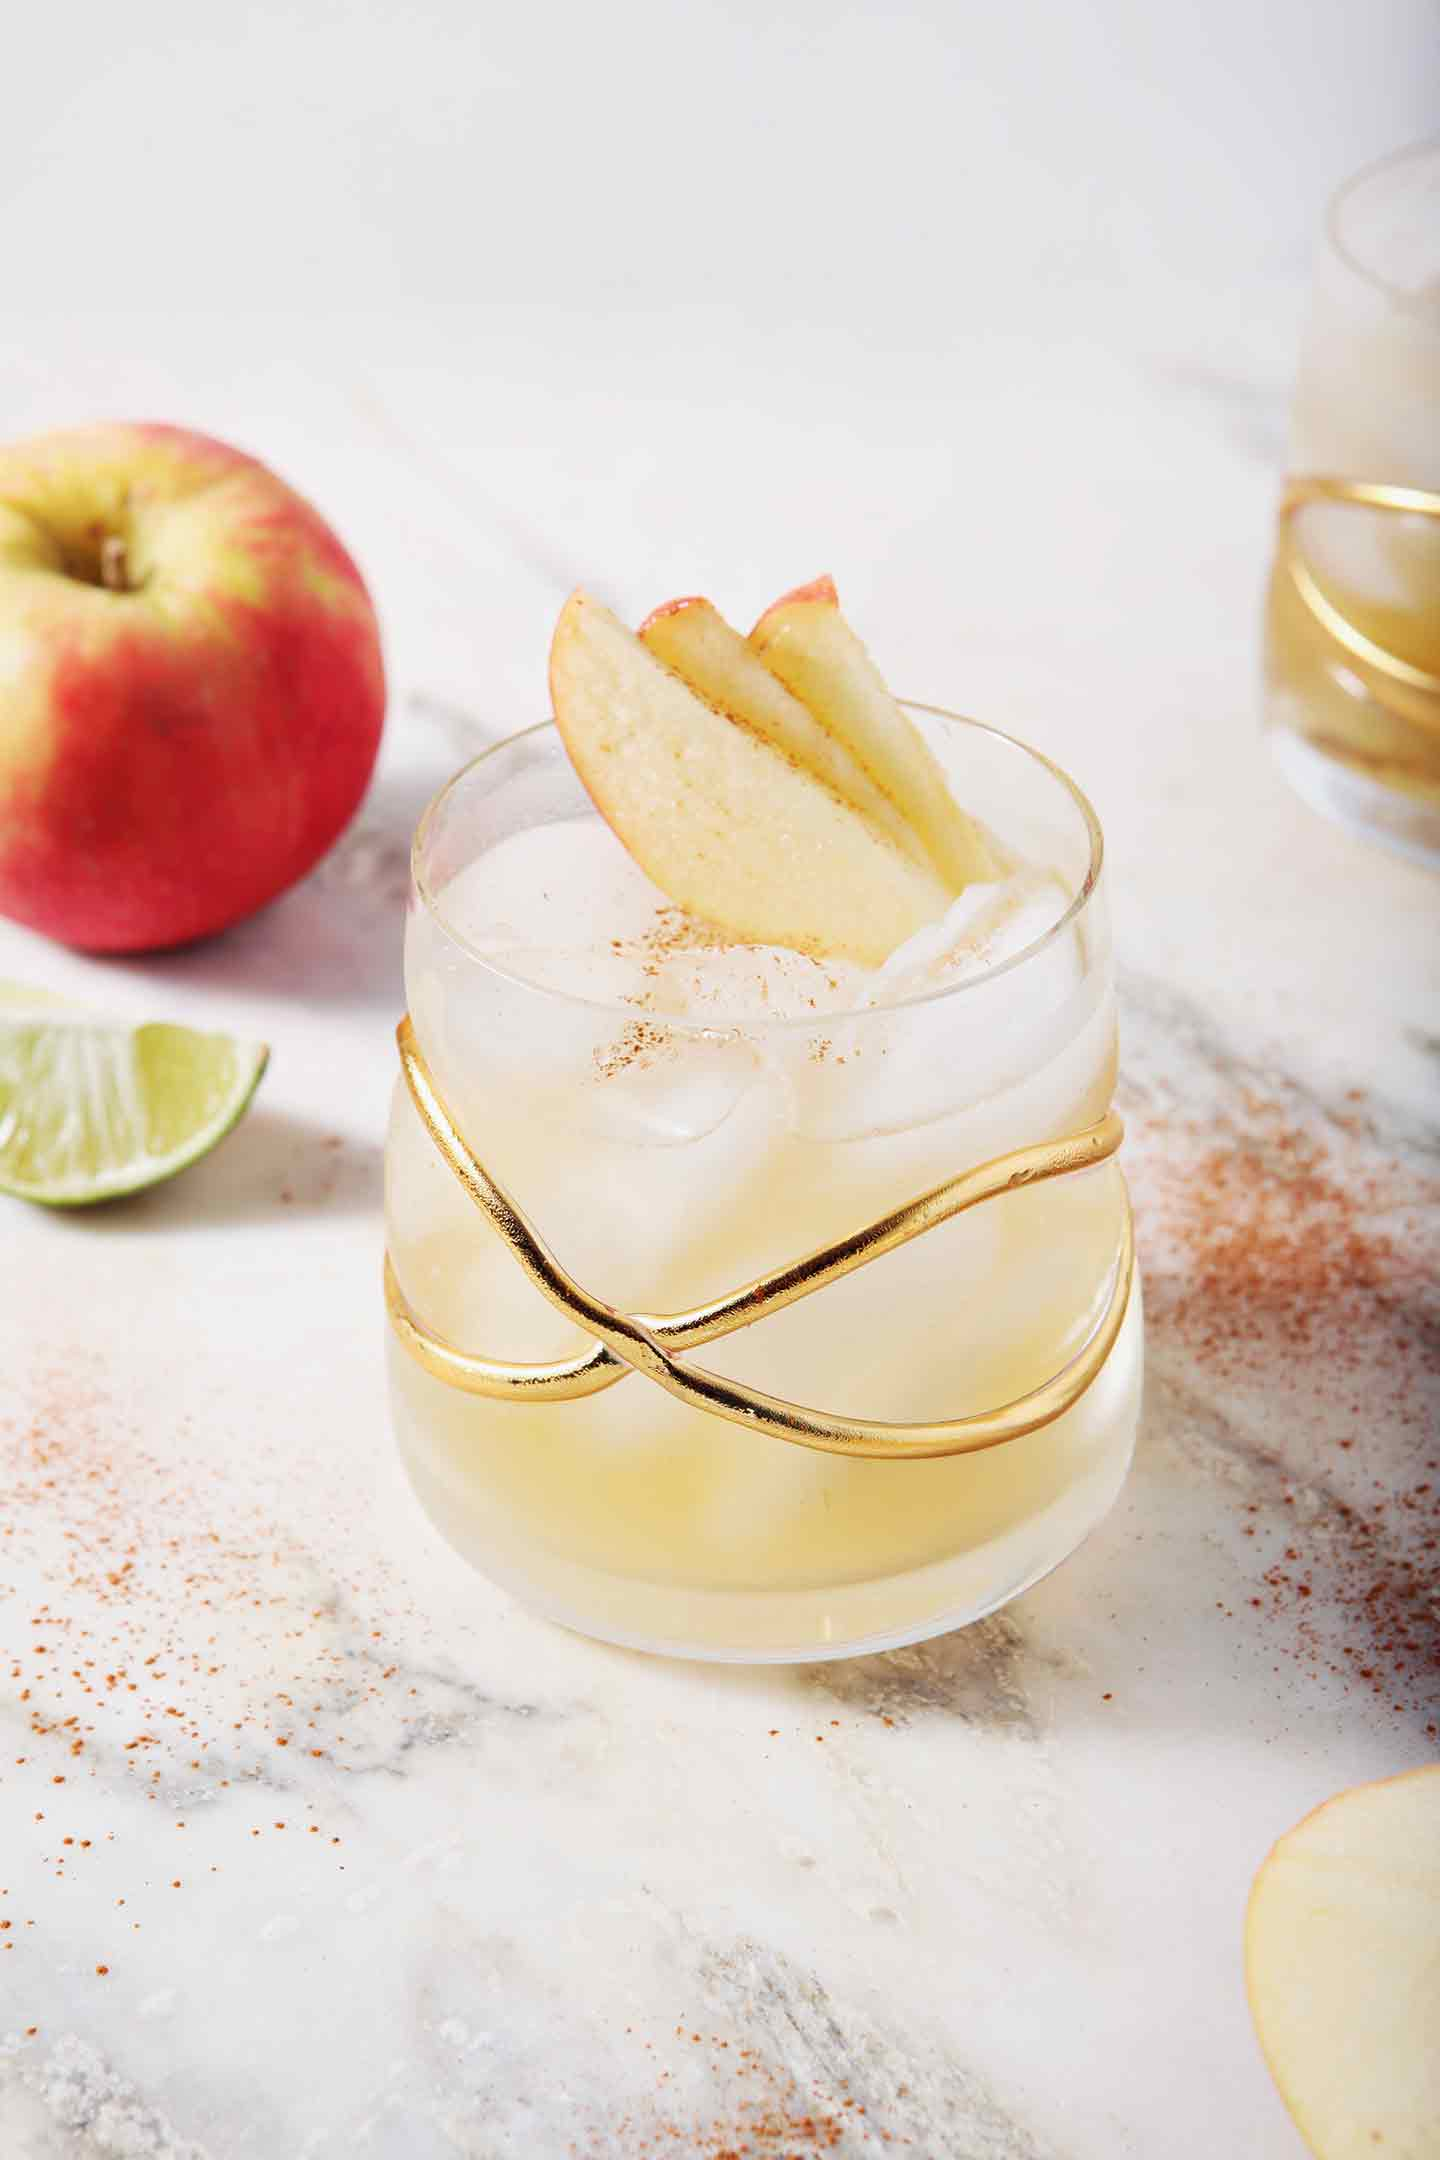 Two Apple Pie Moscow Mules sit on a marble background, surrounded by apples, lime slices and cinnamon